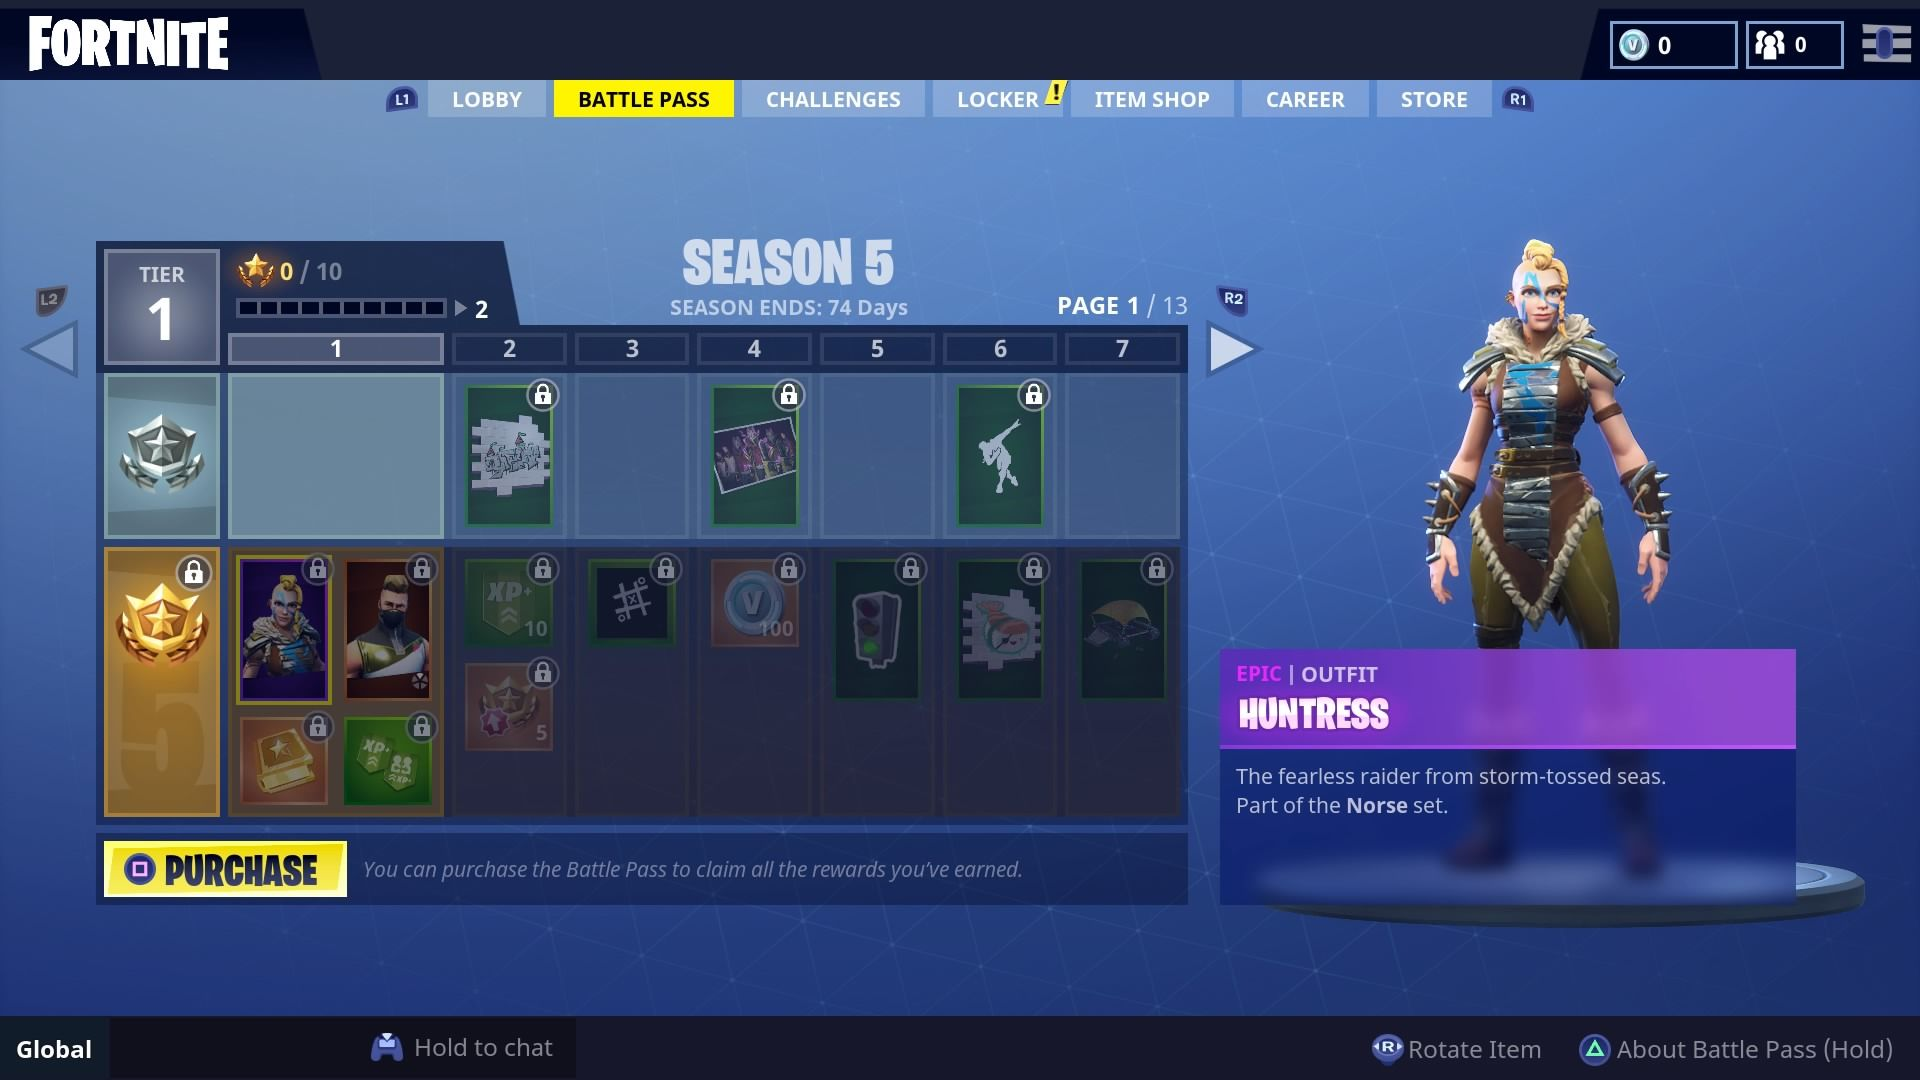 fortnite season 5 huntress skin - fortnite season 8 blockbuster skin